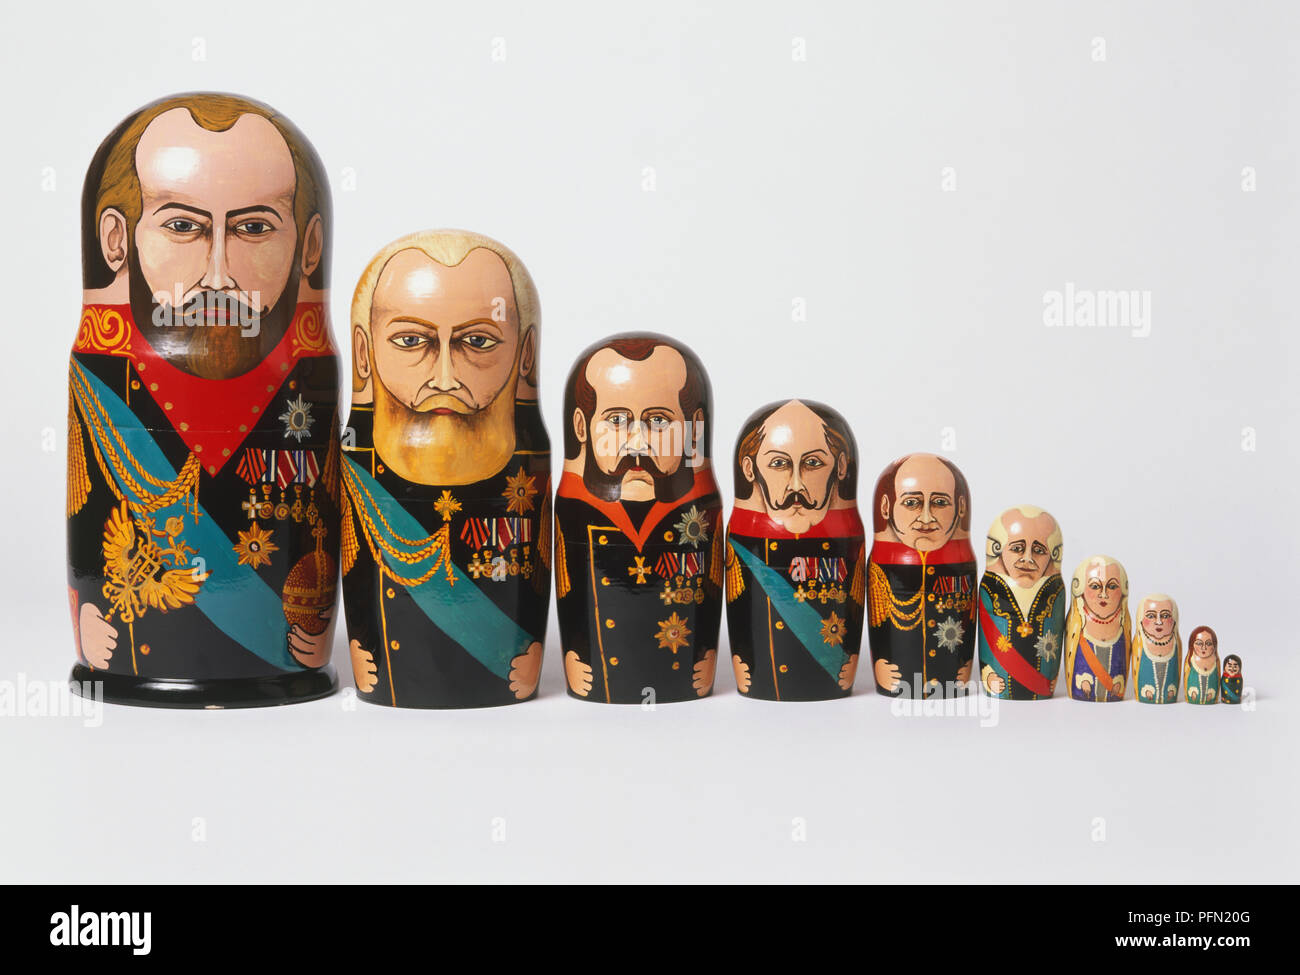 Row of Matryoshka-style dolls of gradually decreasing size, with iconography of military and political leaders. - Stock Image